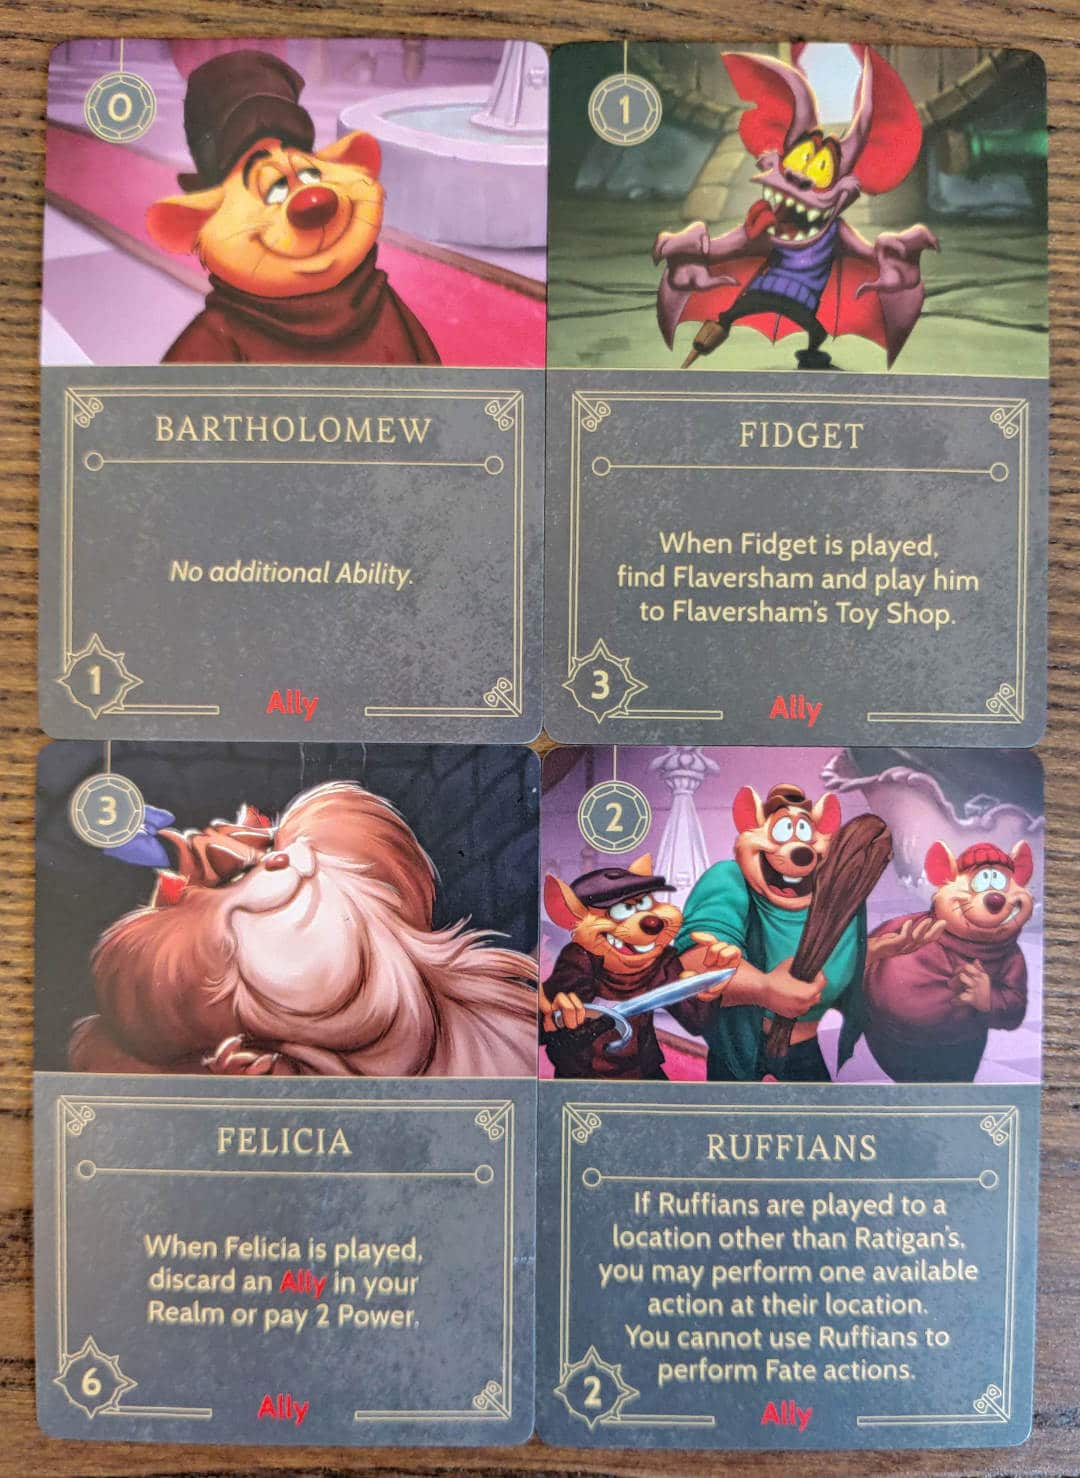 Ratigan's Ally cards